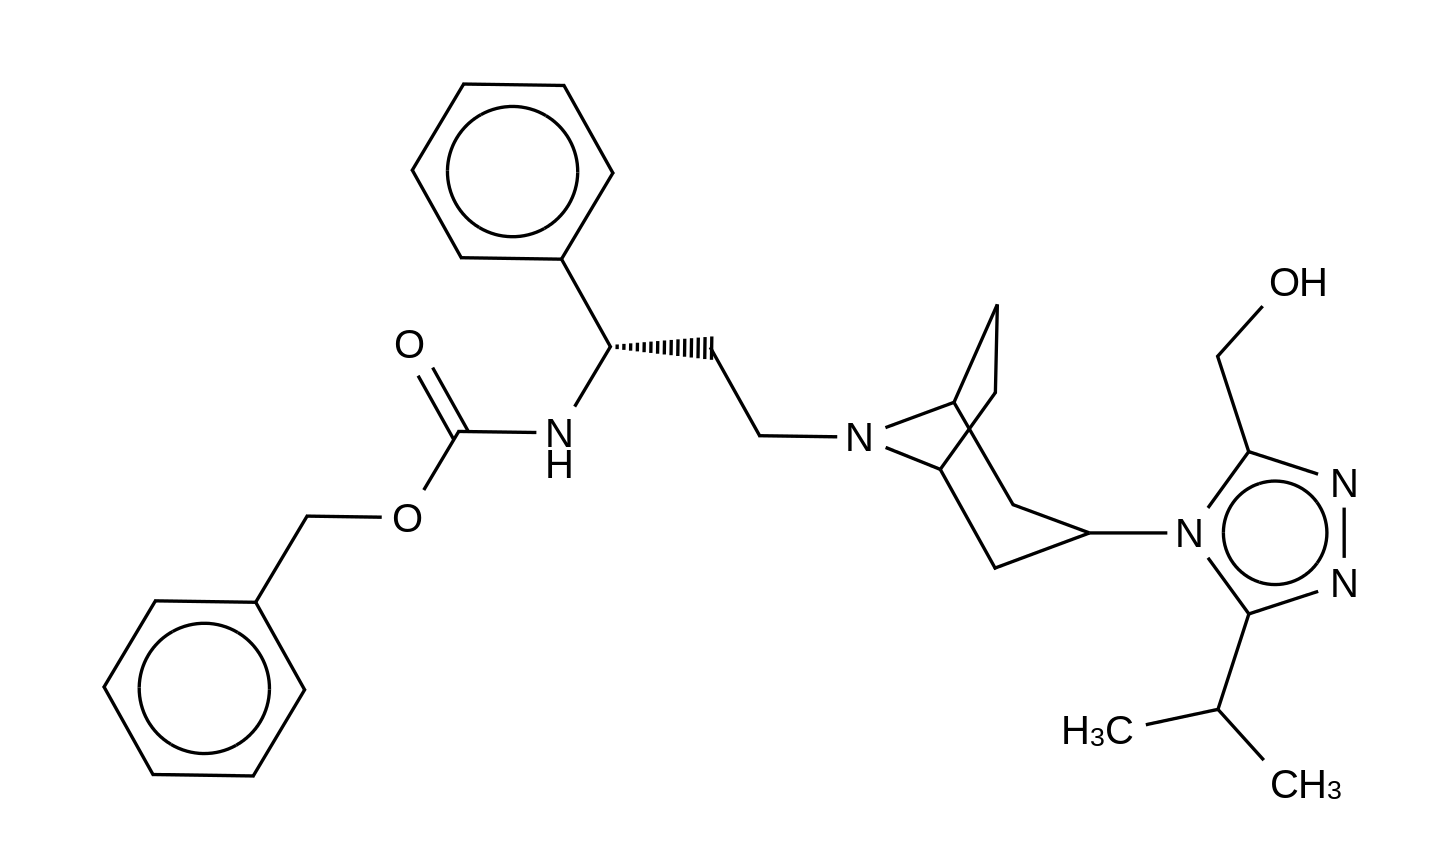 N-Des-(4,4-difluorocyclohexanecarboxy)-N-carbobenzyloxy-3-hydroxymethyl  Maraviroc